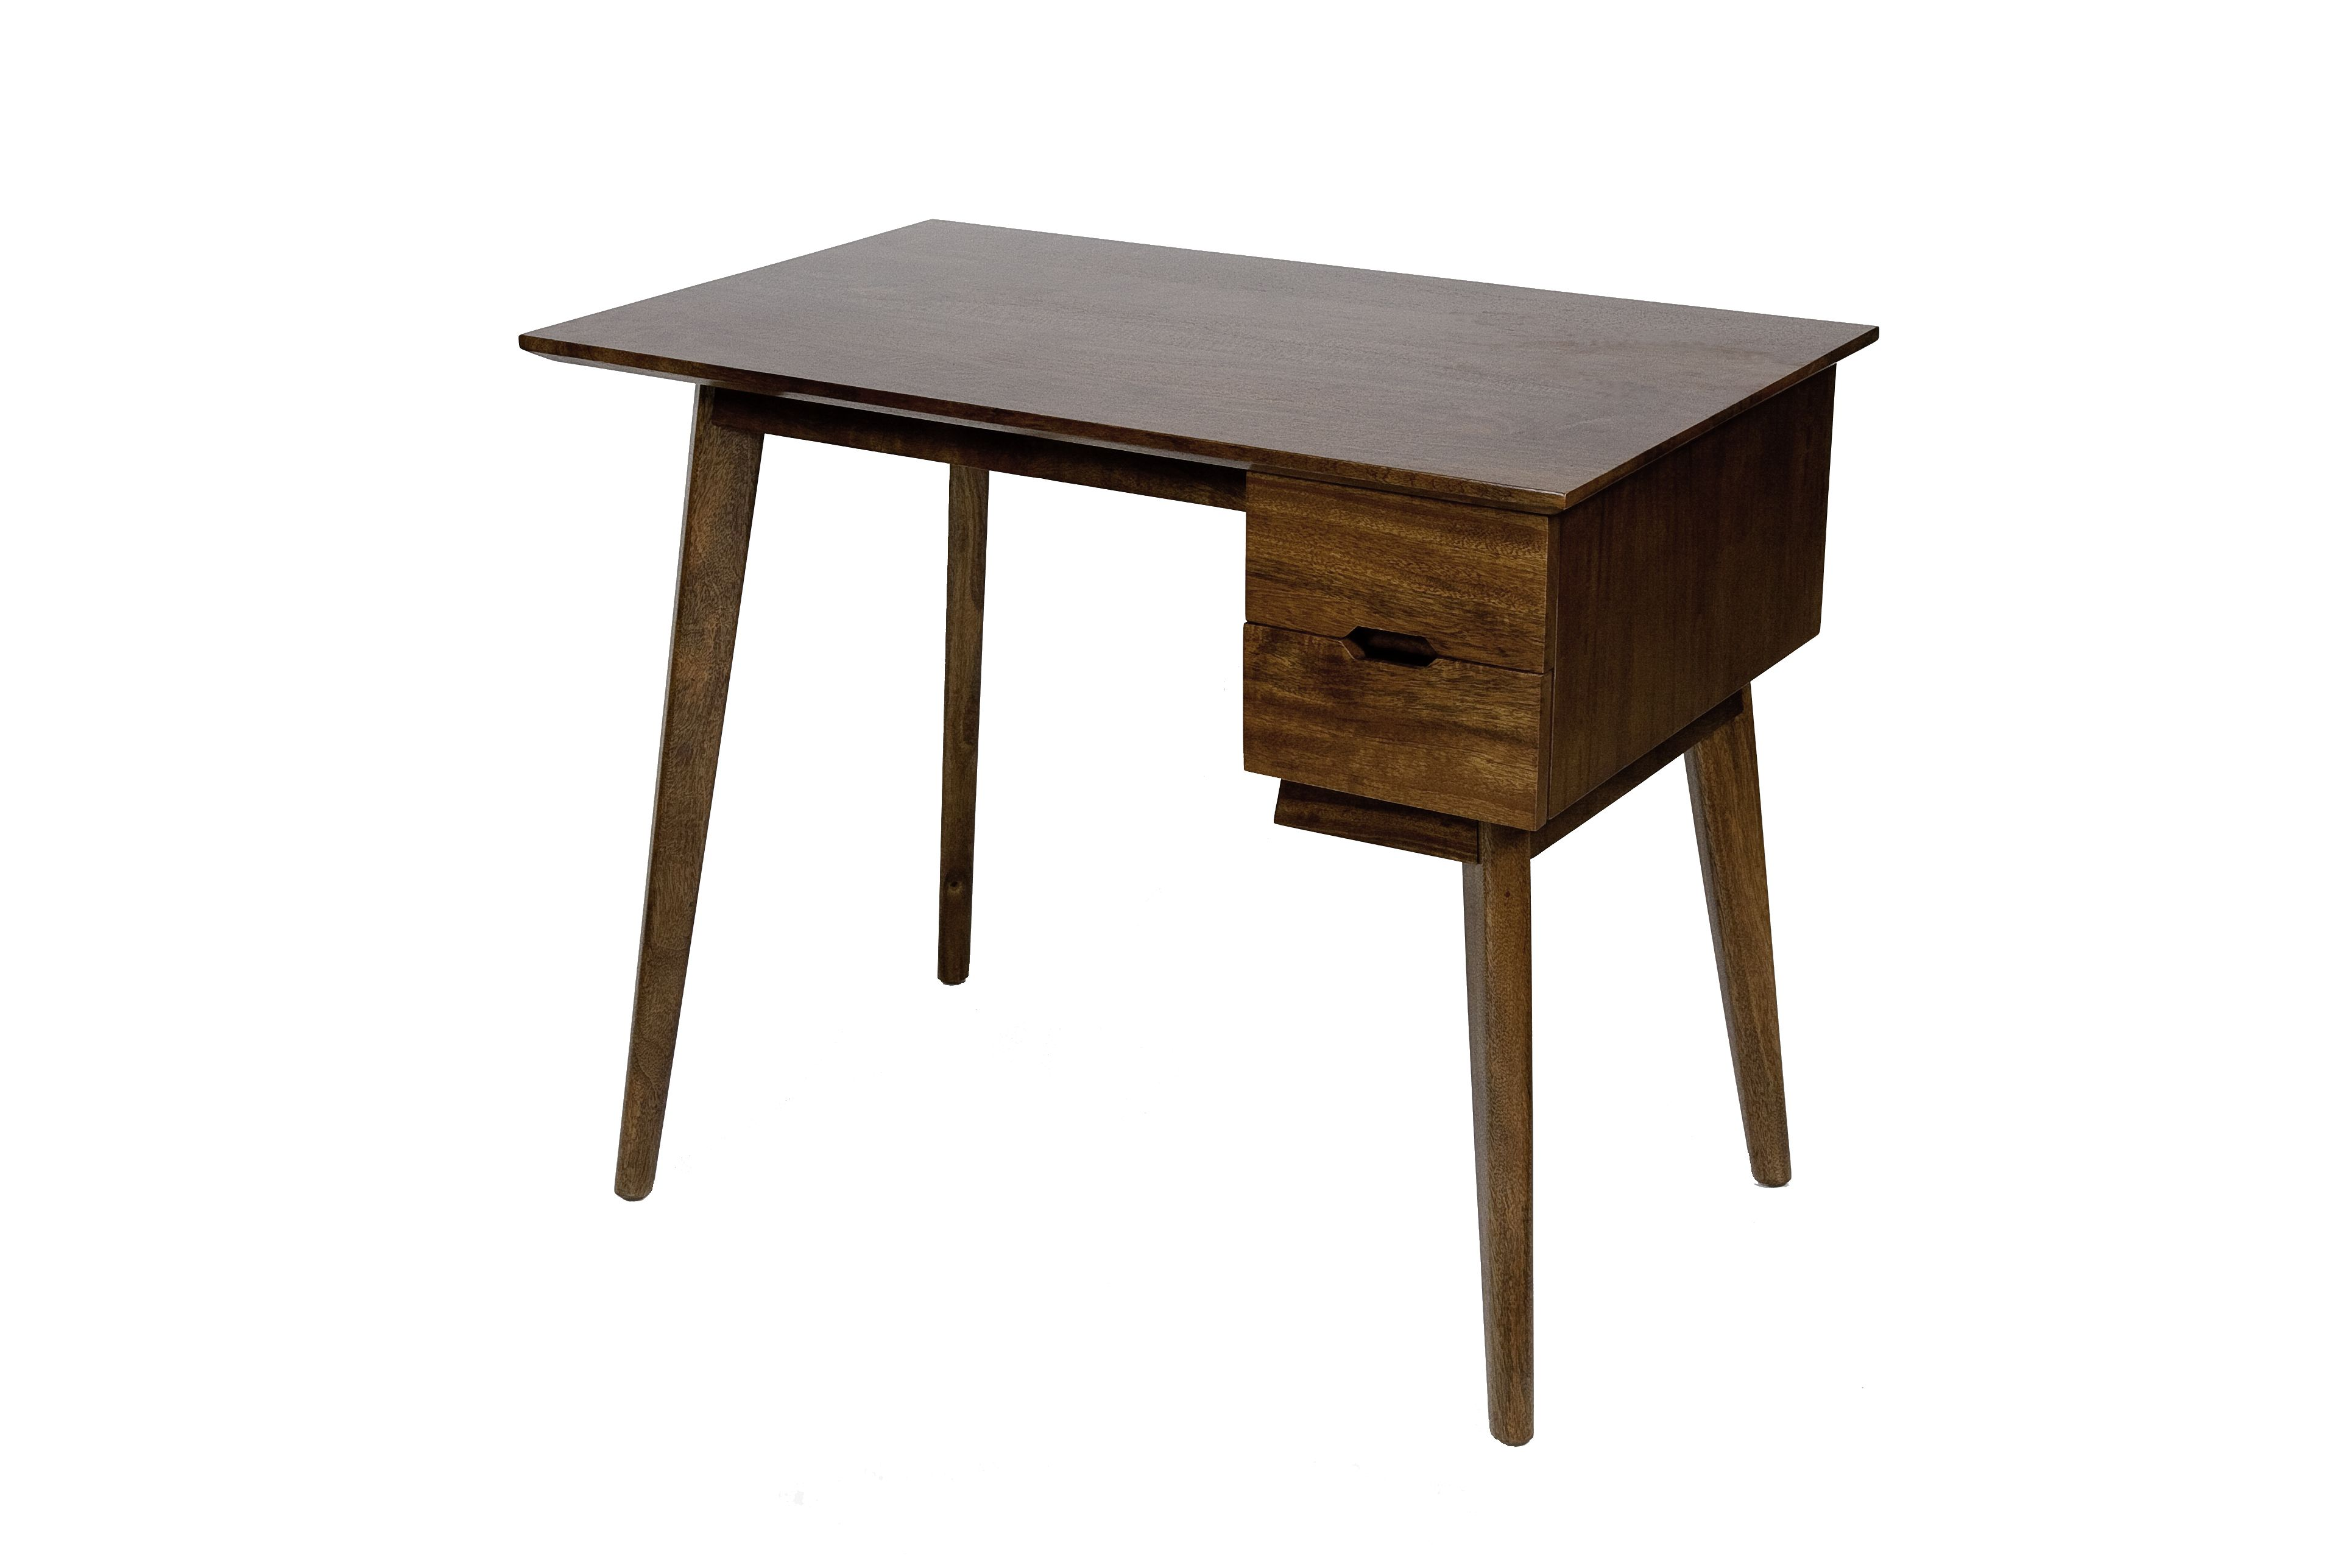 Bureau Junius Design E. Gallina Marilyn Desk Empire Homewares Empire Products Desk